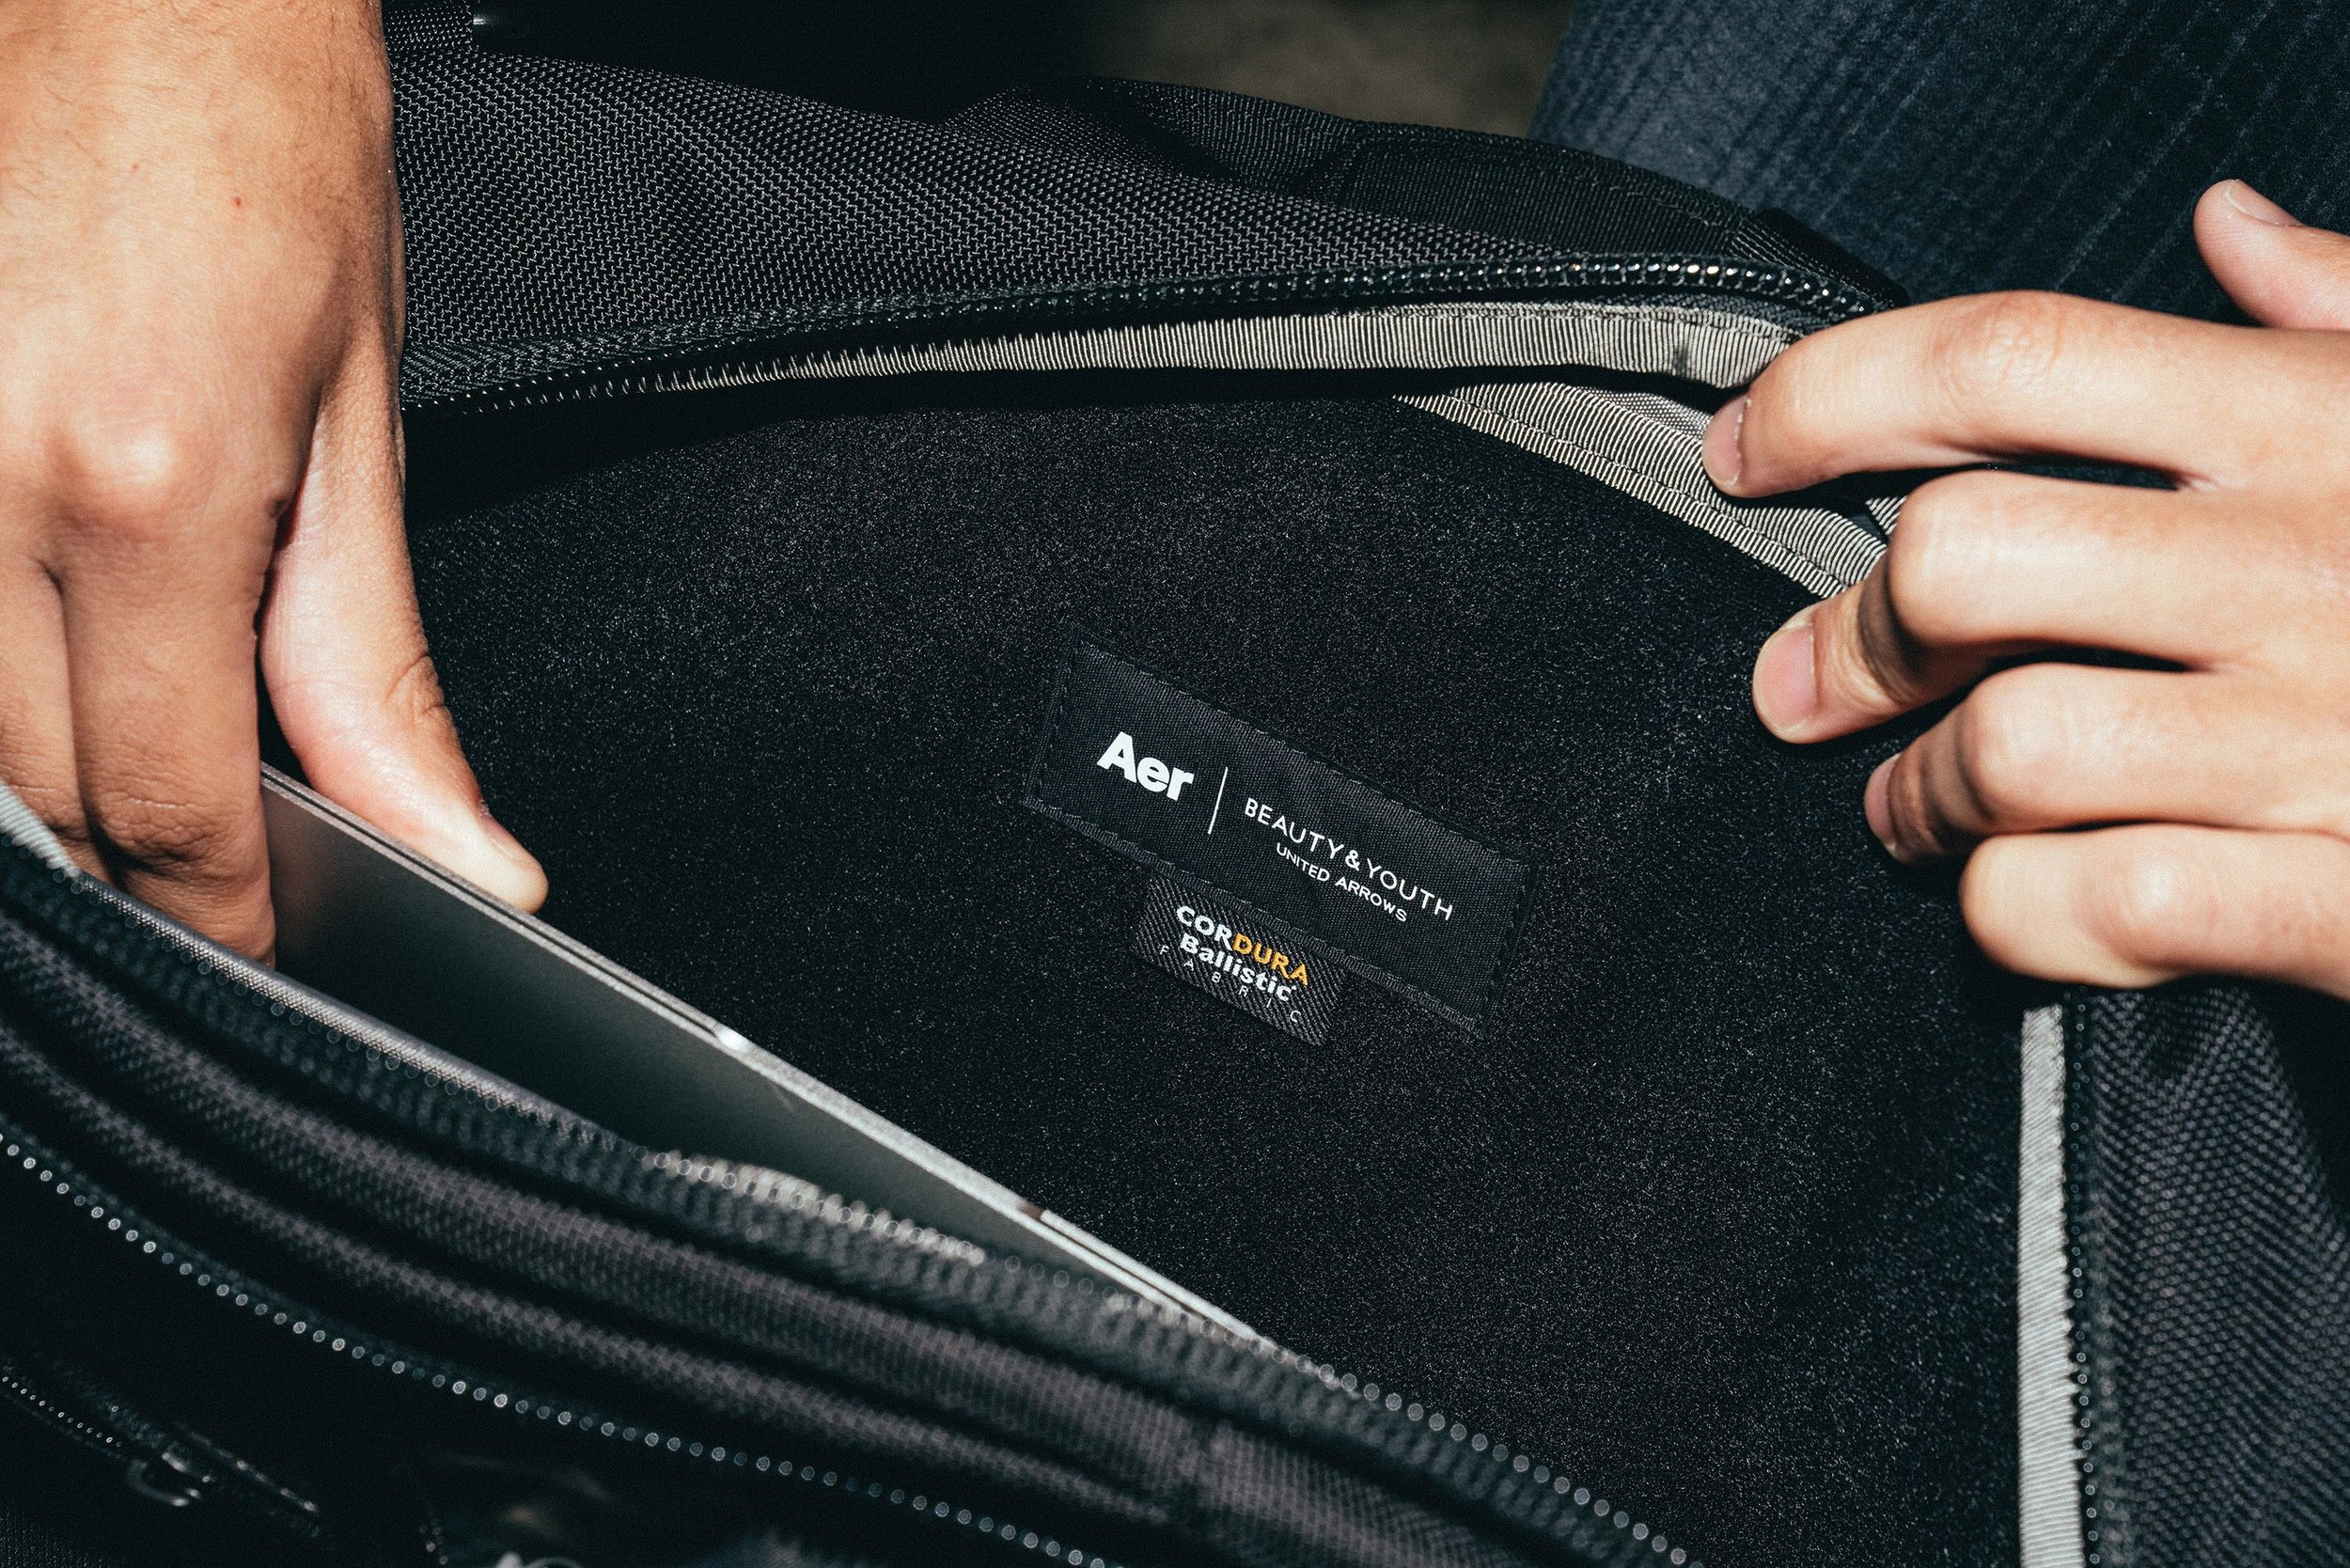 The laptop pocket features soft lining for additional protection.